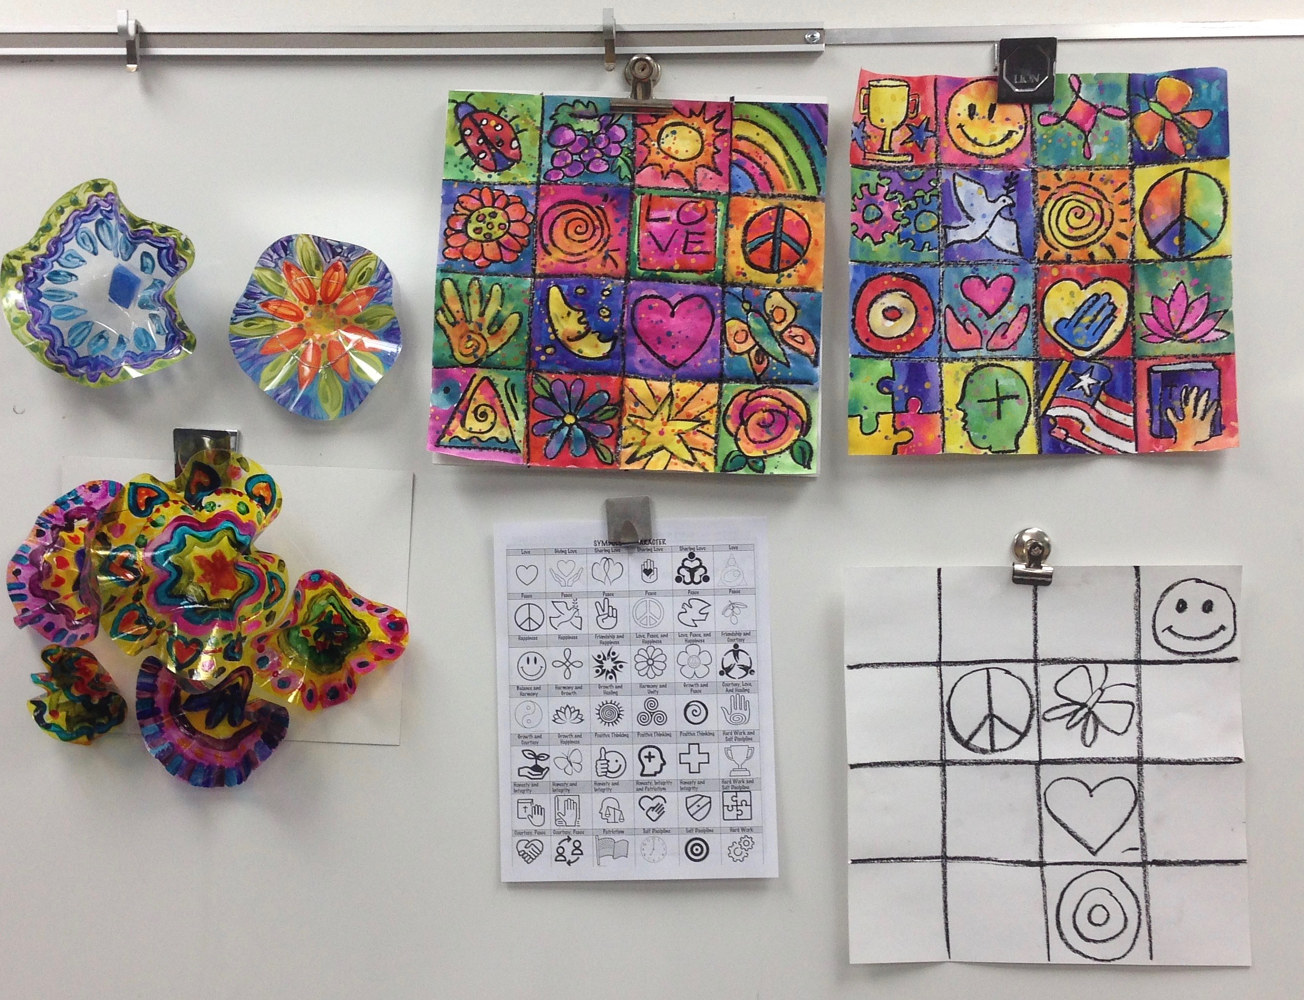 Teaching Stained Glass Concept with Character Ed Symbols to 1st Graders by Linnie (Victoria) Aikens Lindsay